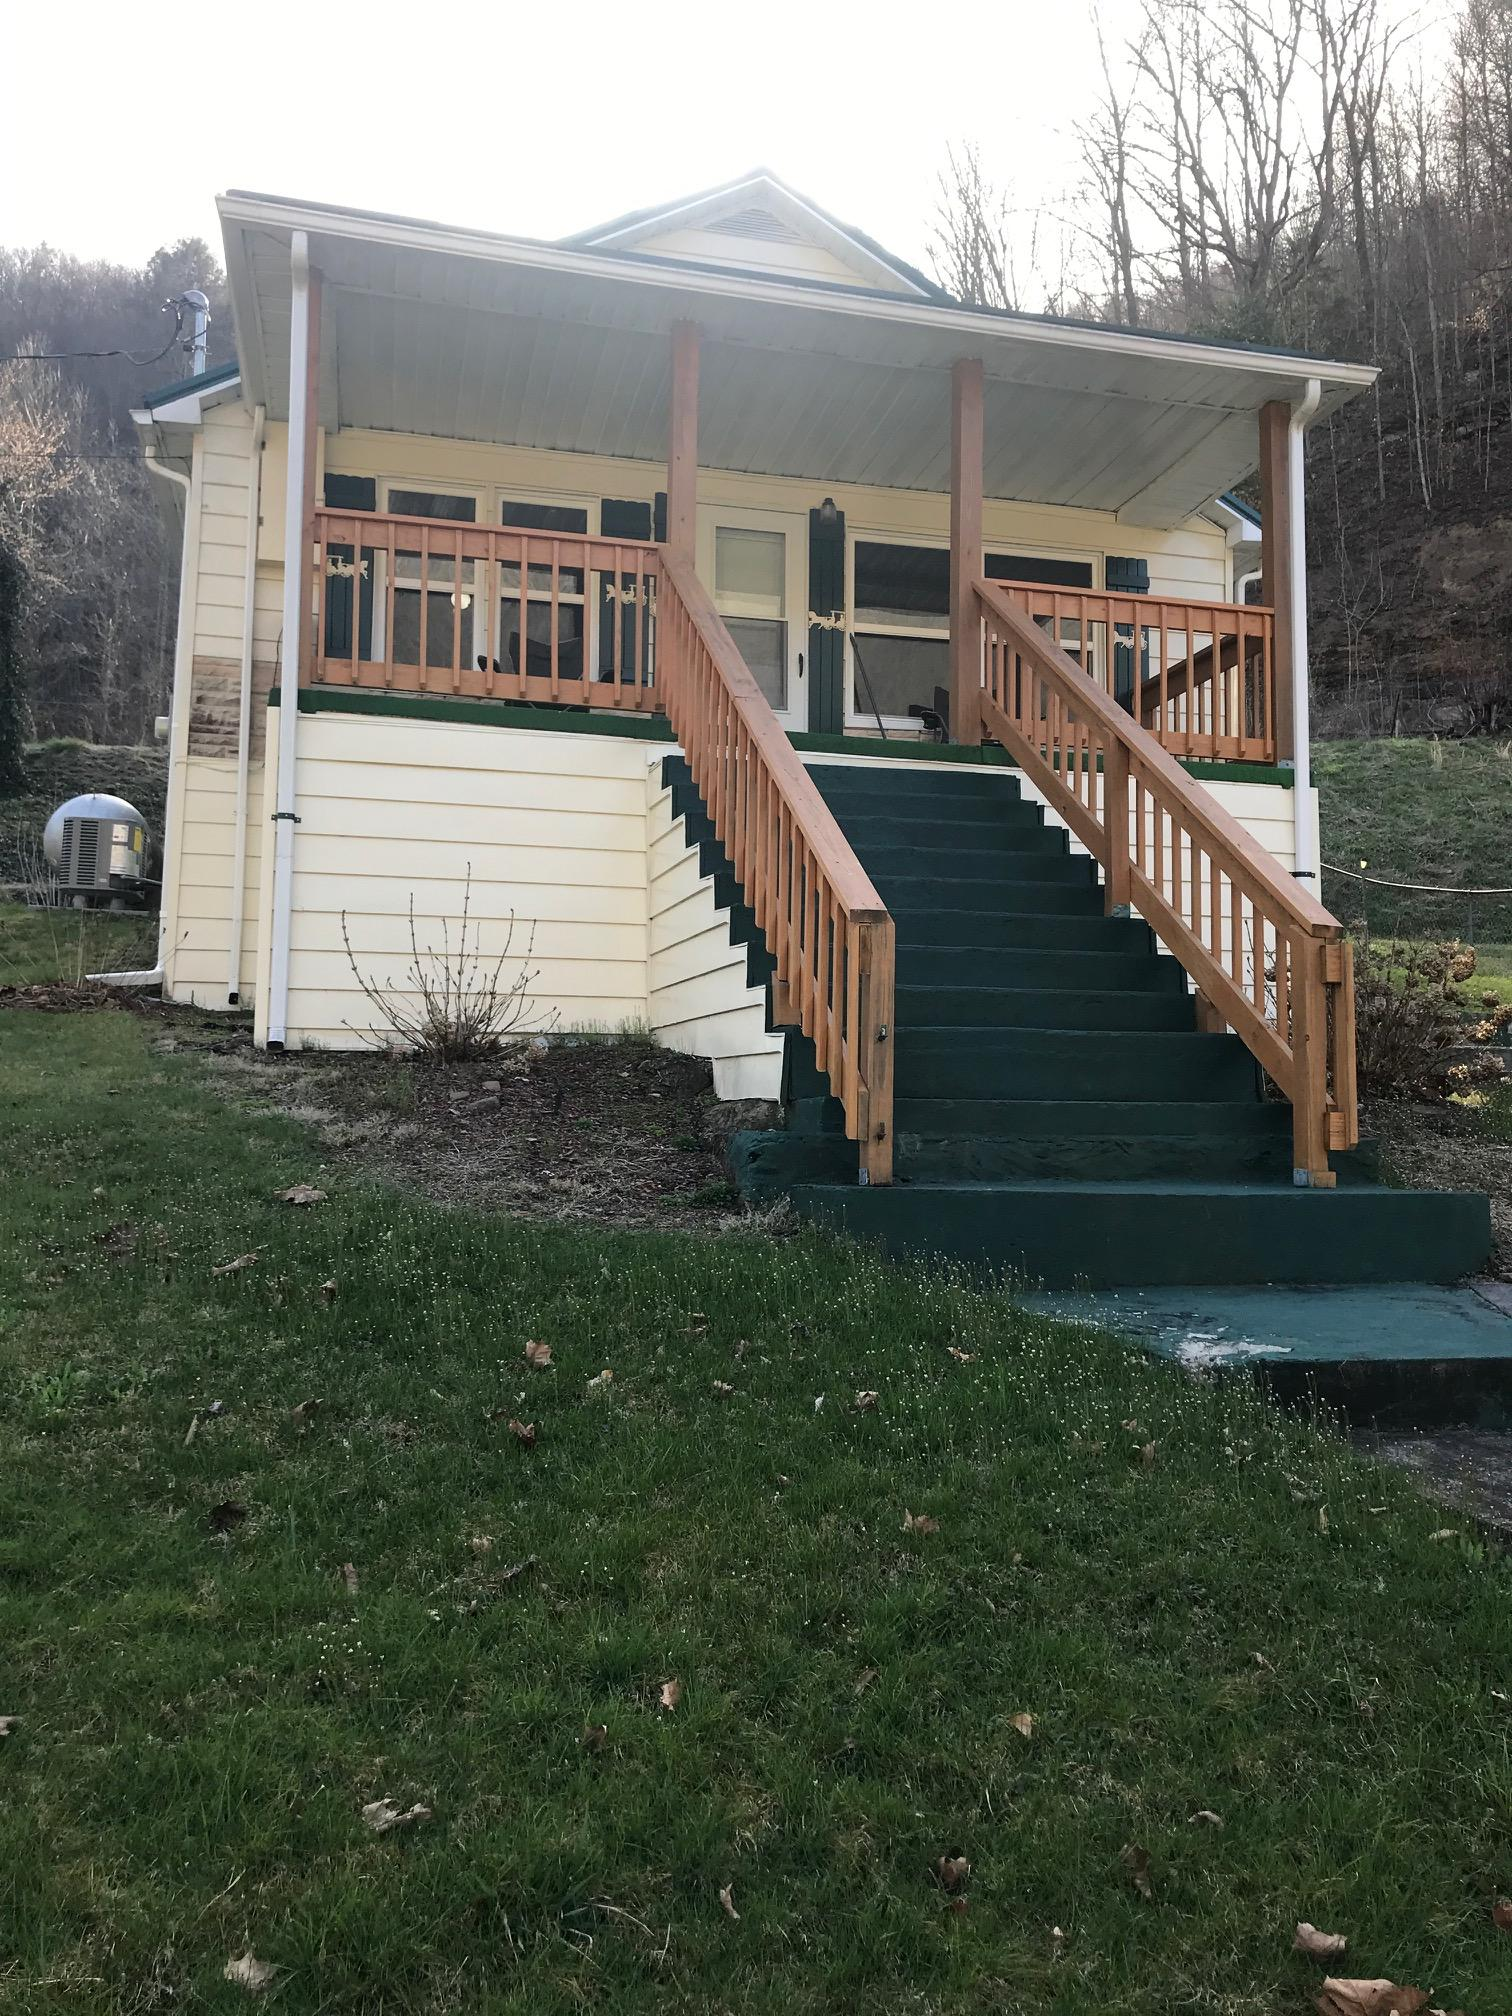 Property Image for 1065 Raders Rd